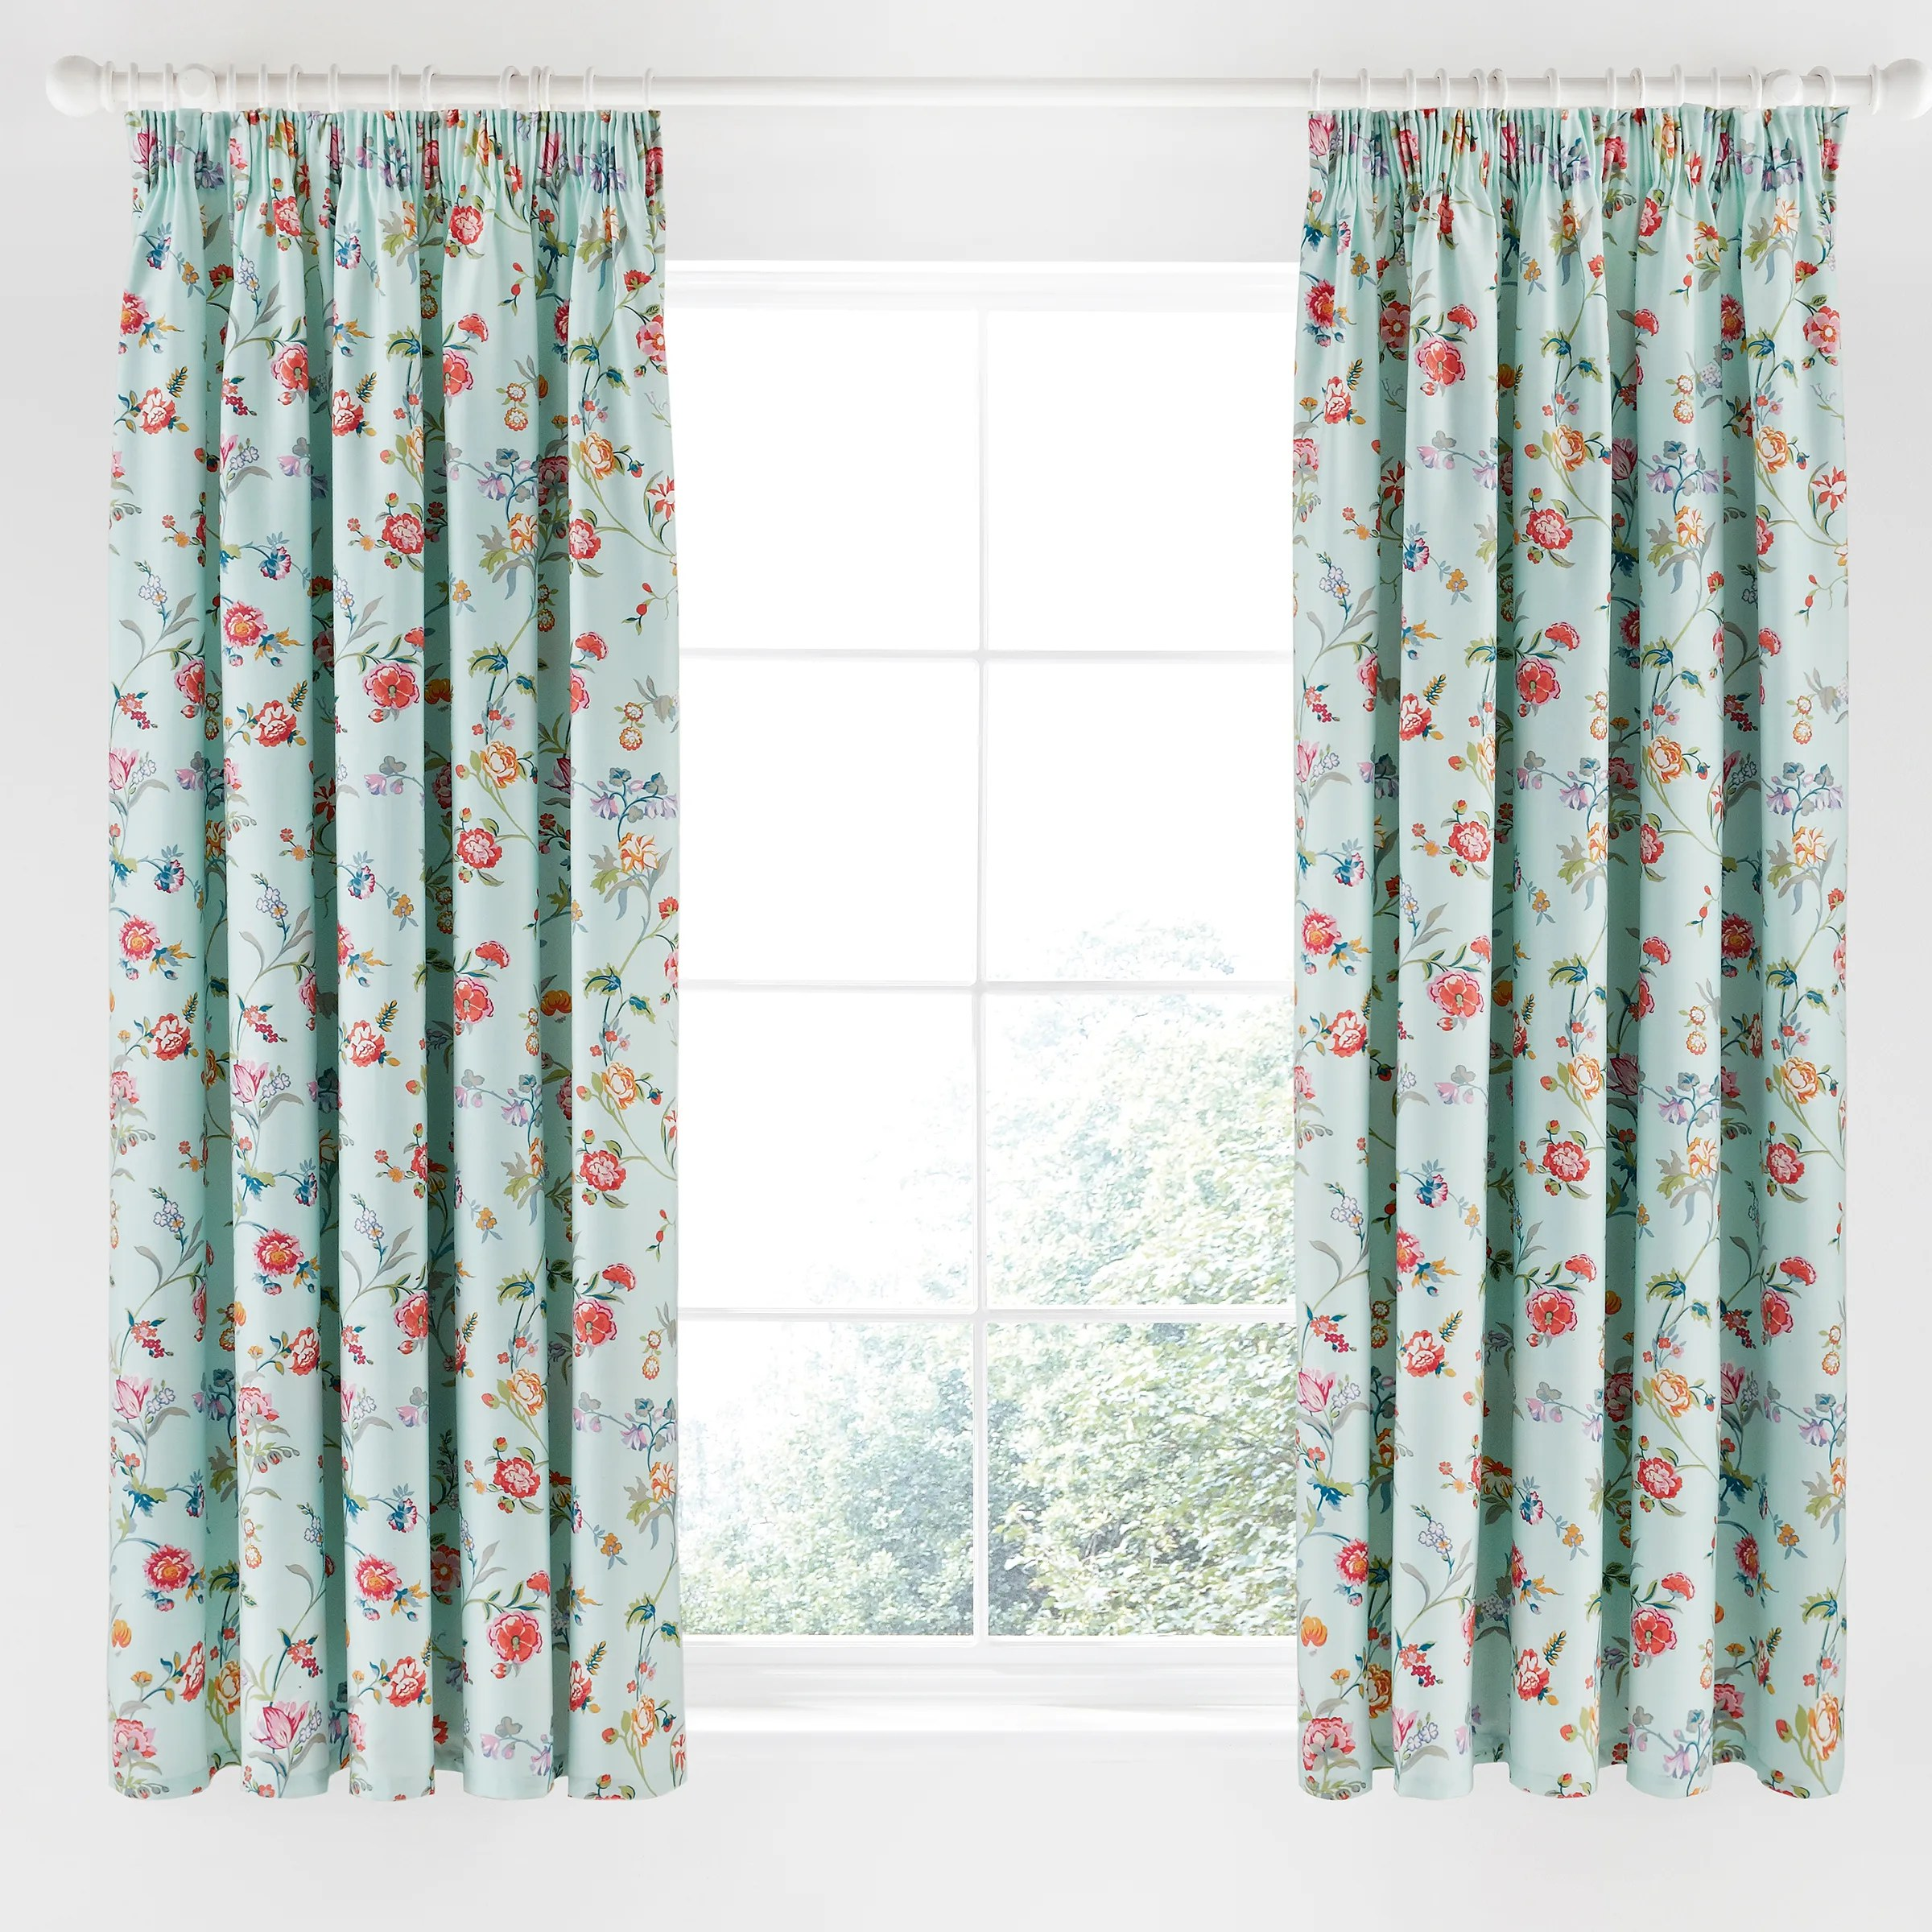 Cheap Curtains Online Curtains Lilac Shop For Cheap Curtains And Blinds And Save